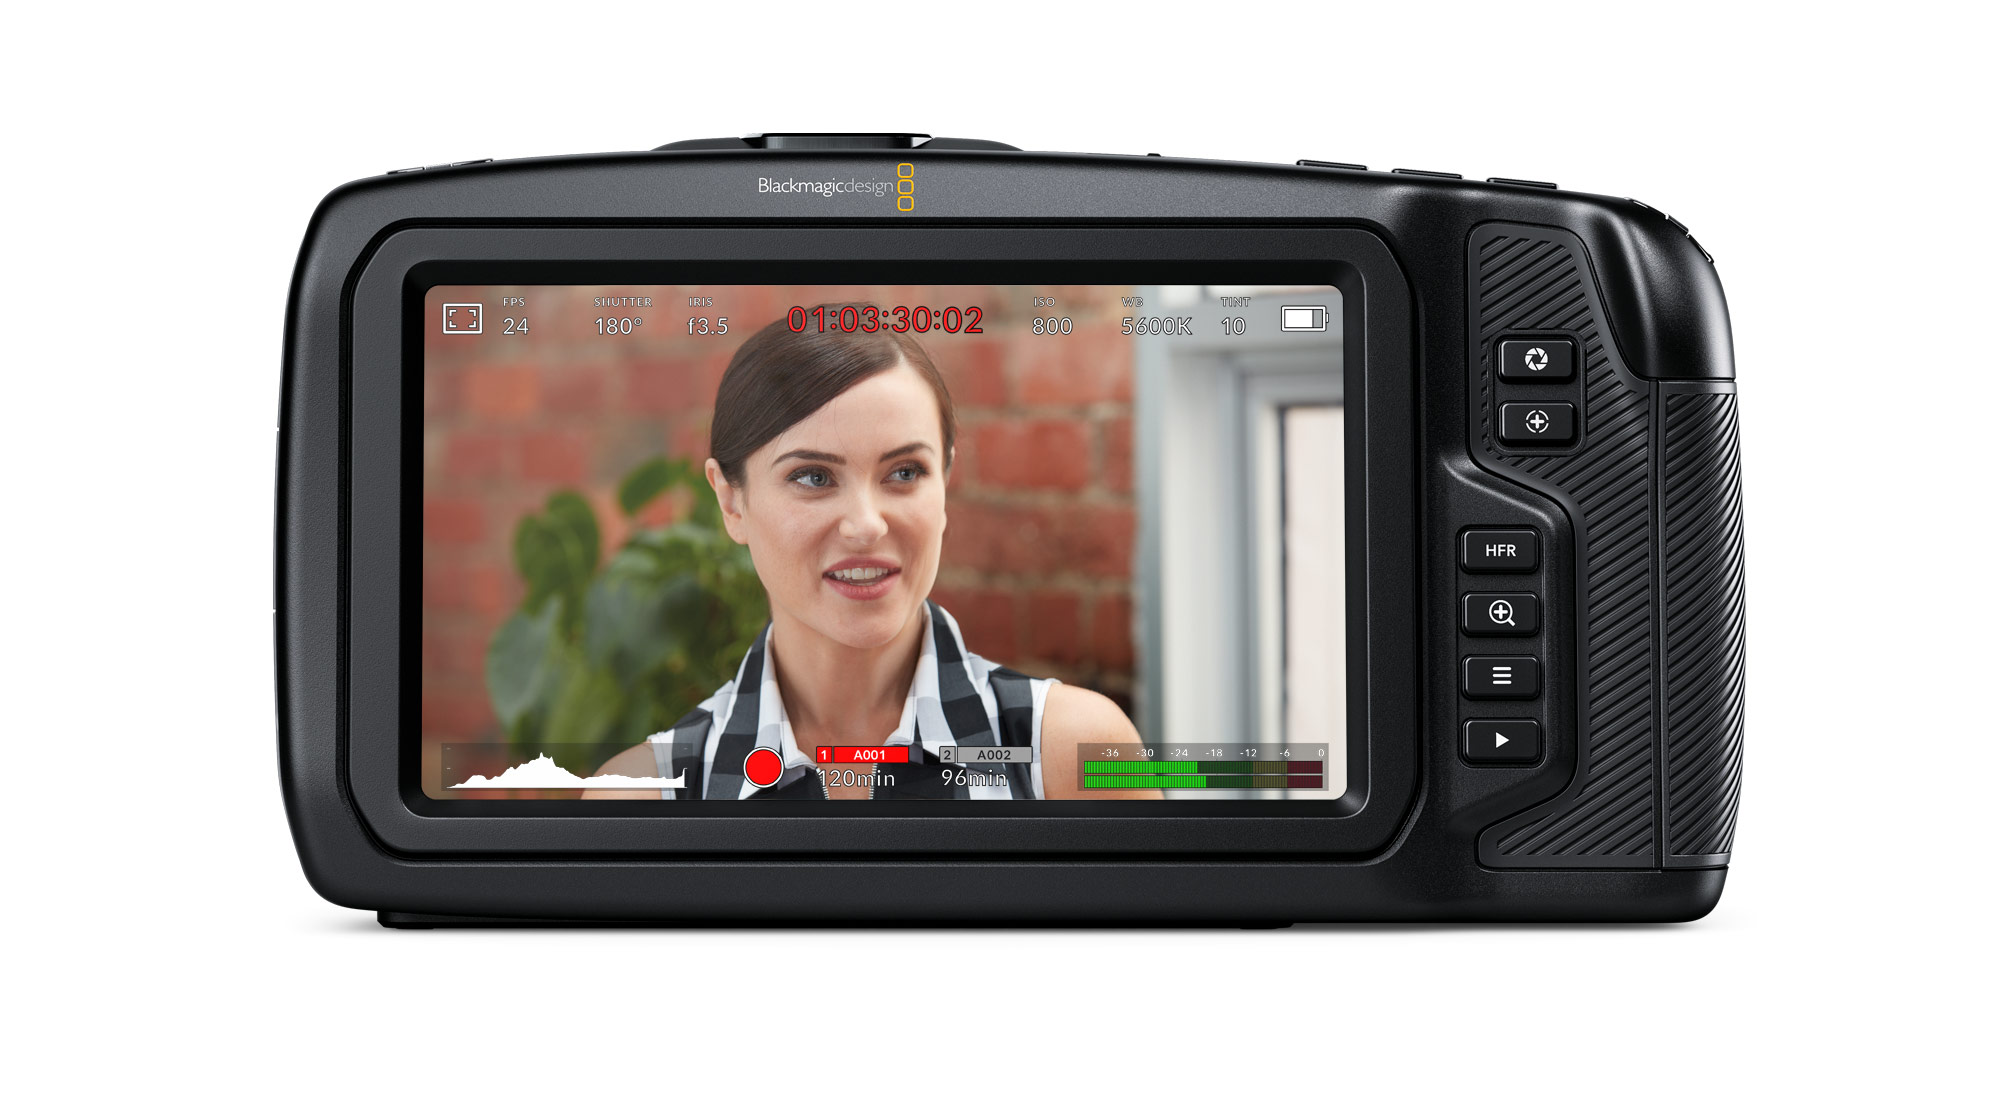 Blackmagic introduced 1295$ Pocket Cinema Camera with 4K RAW